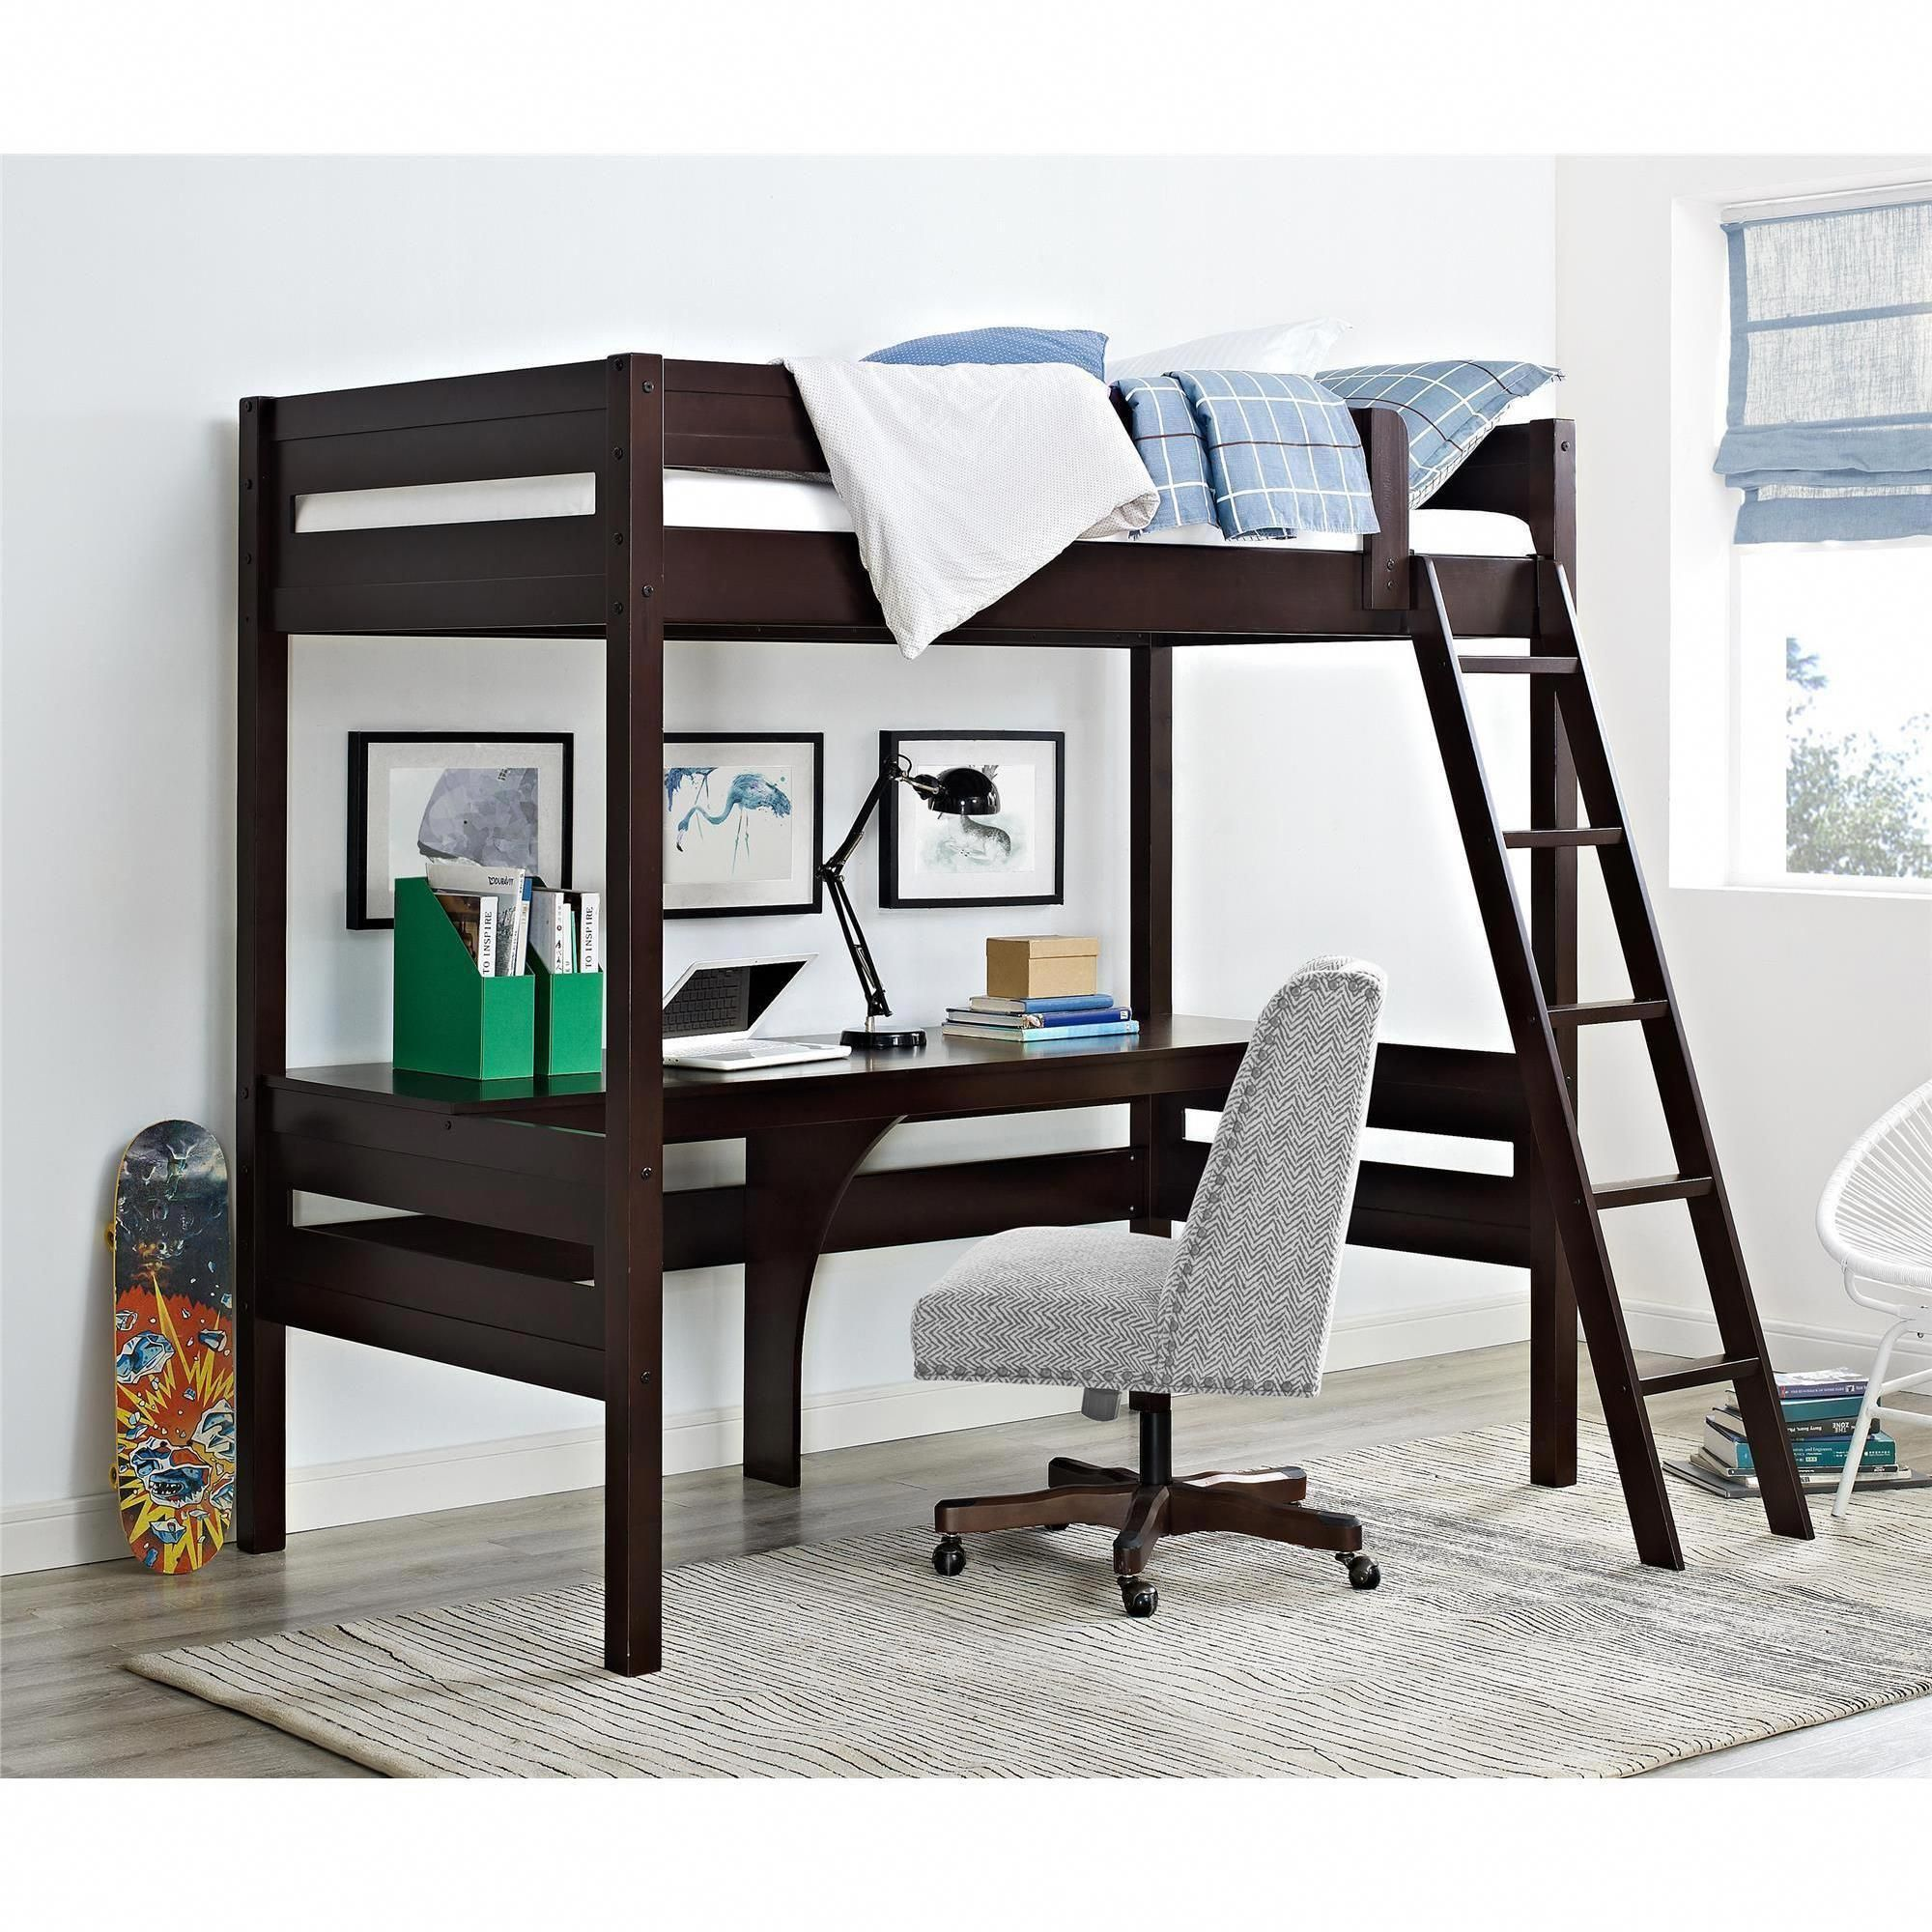 Loft bed with desk and chair  Dorel Living Harlan Loft Bed with Desk Loft bed espresso Brown